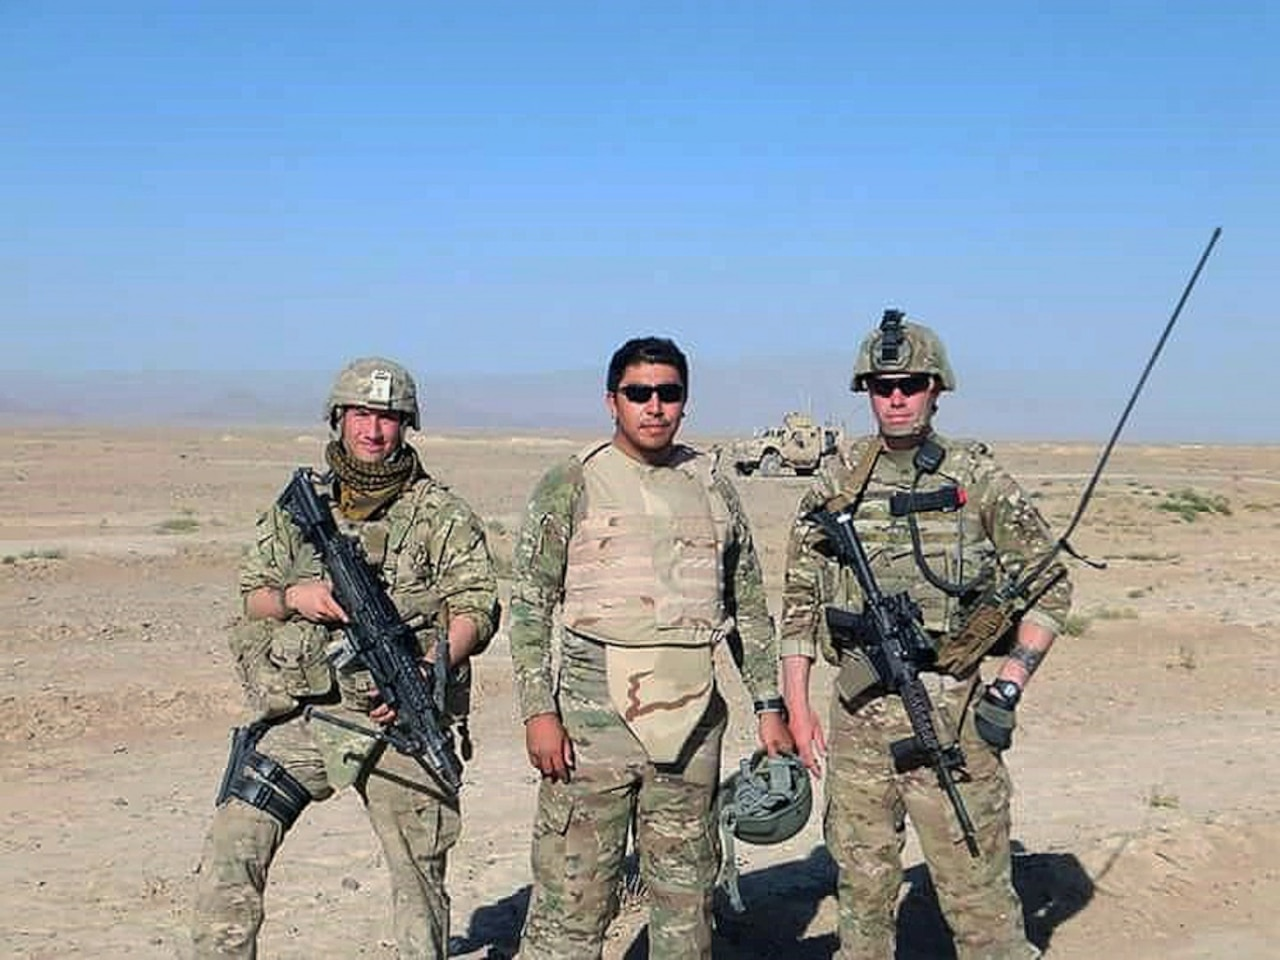 An Afghan interpreter stands with two soldiers in Afghanistan.